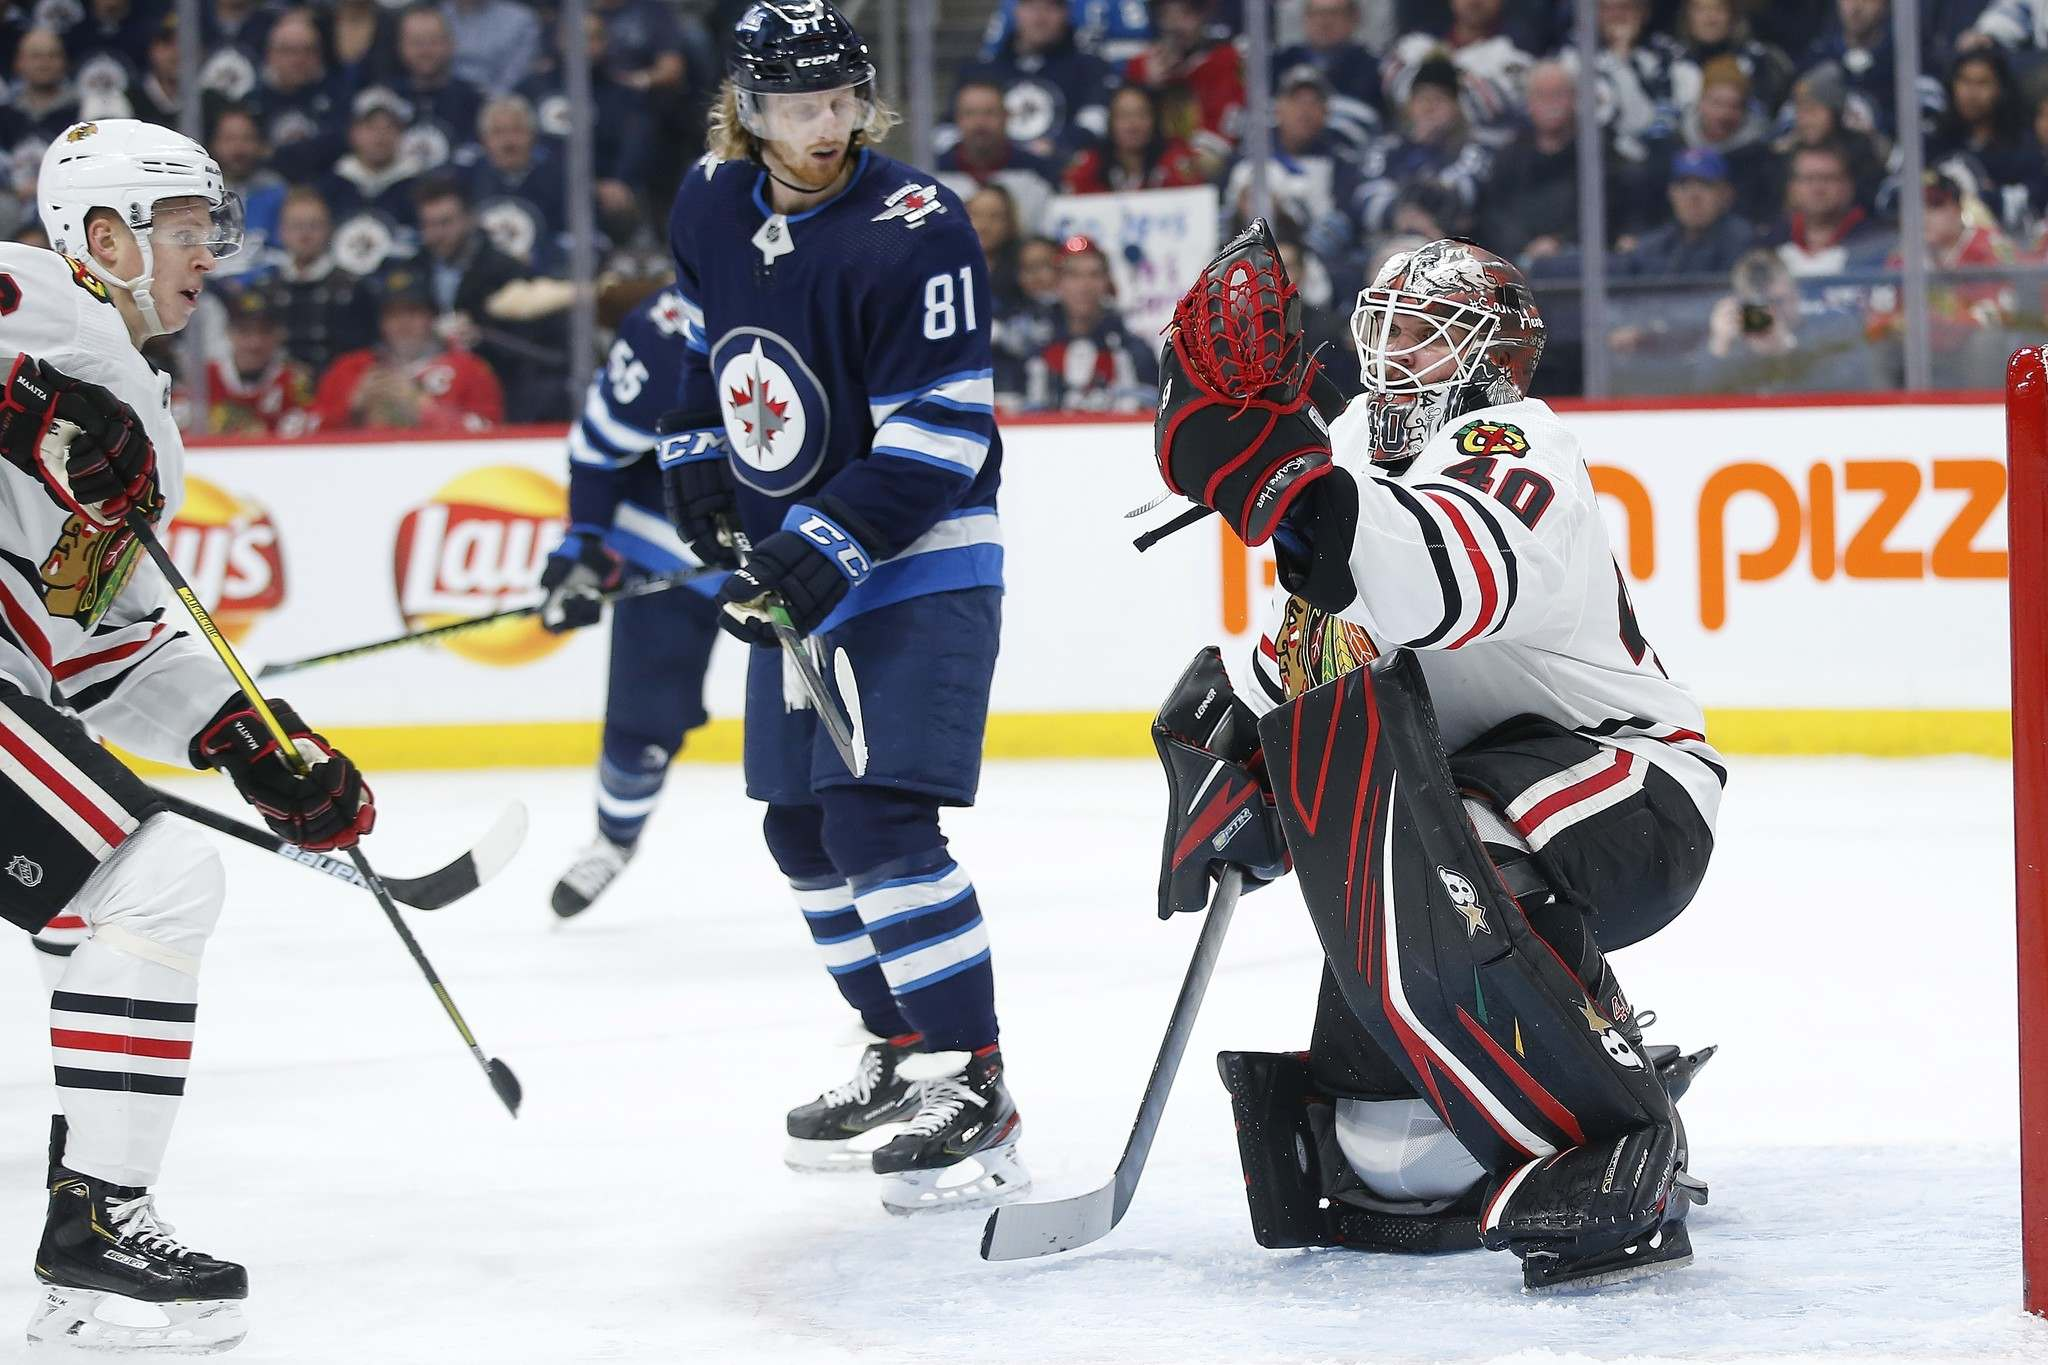 The Jets had a tough time getting anything past Chicago goalie Robin Lehner on Thursday. (John Woods / The Canadian Press)</p>